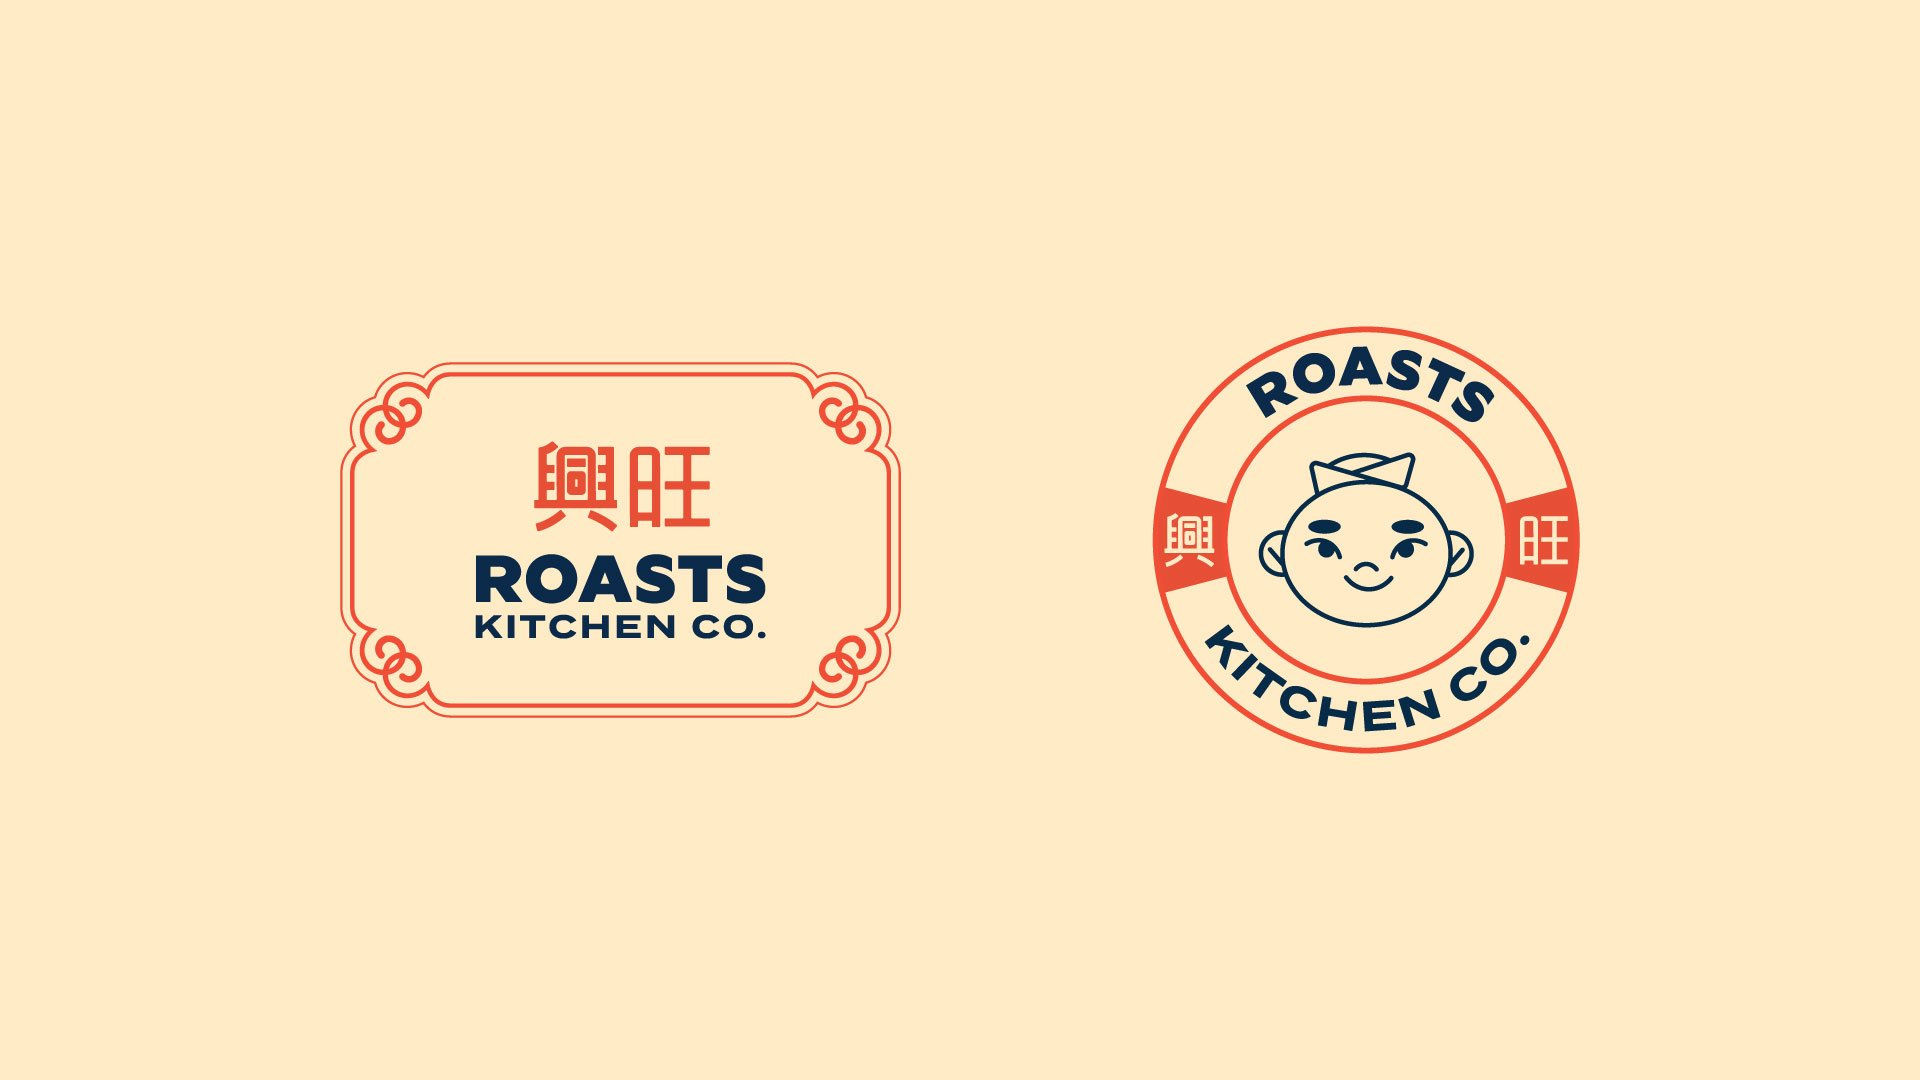 Oriental logo and mascot design for Hong Kong roasts restaurant Roasts Kitchen Company